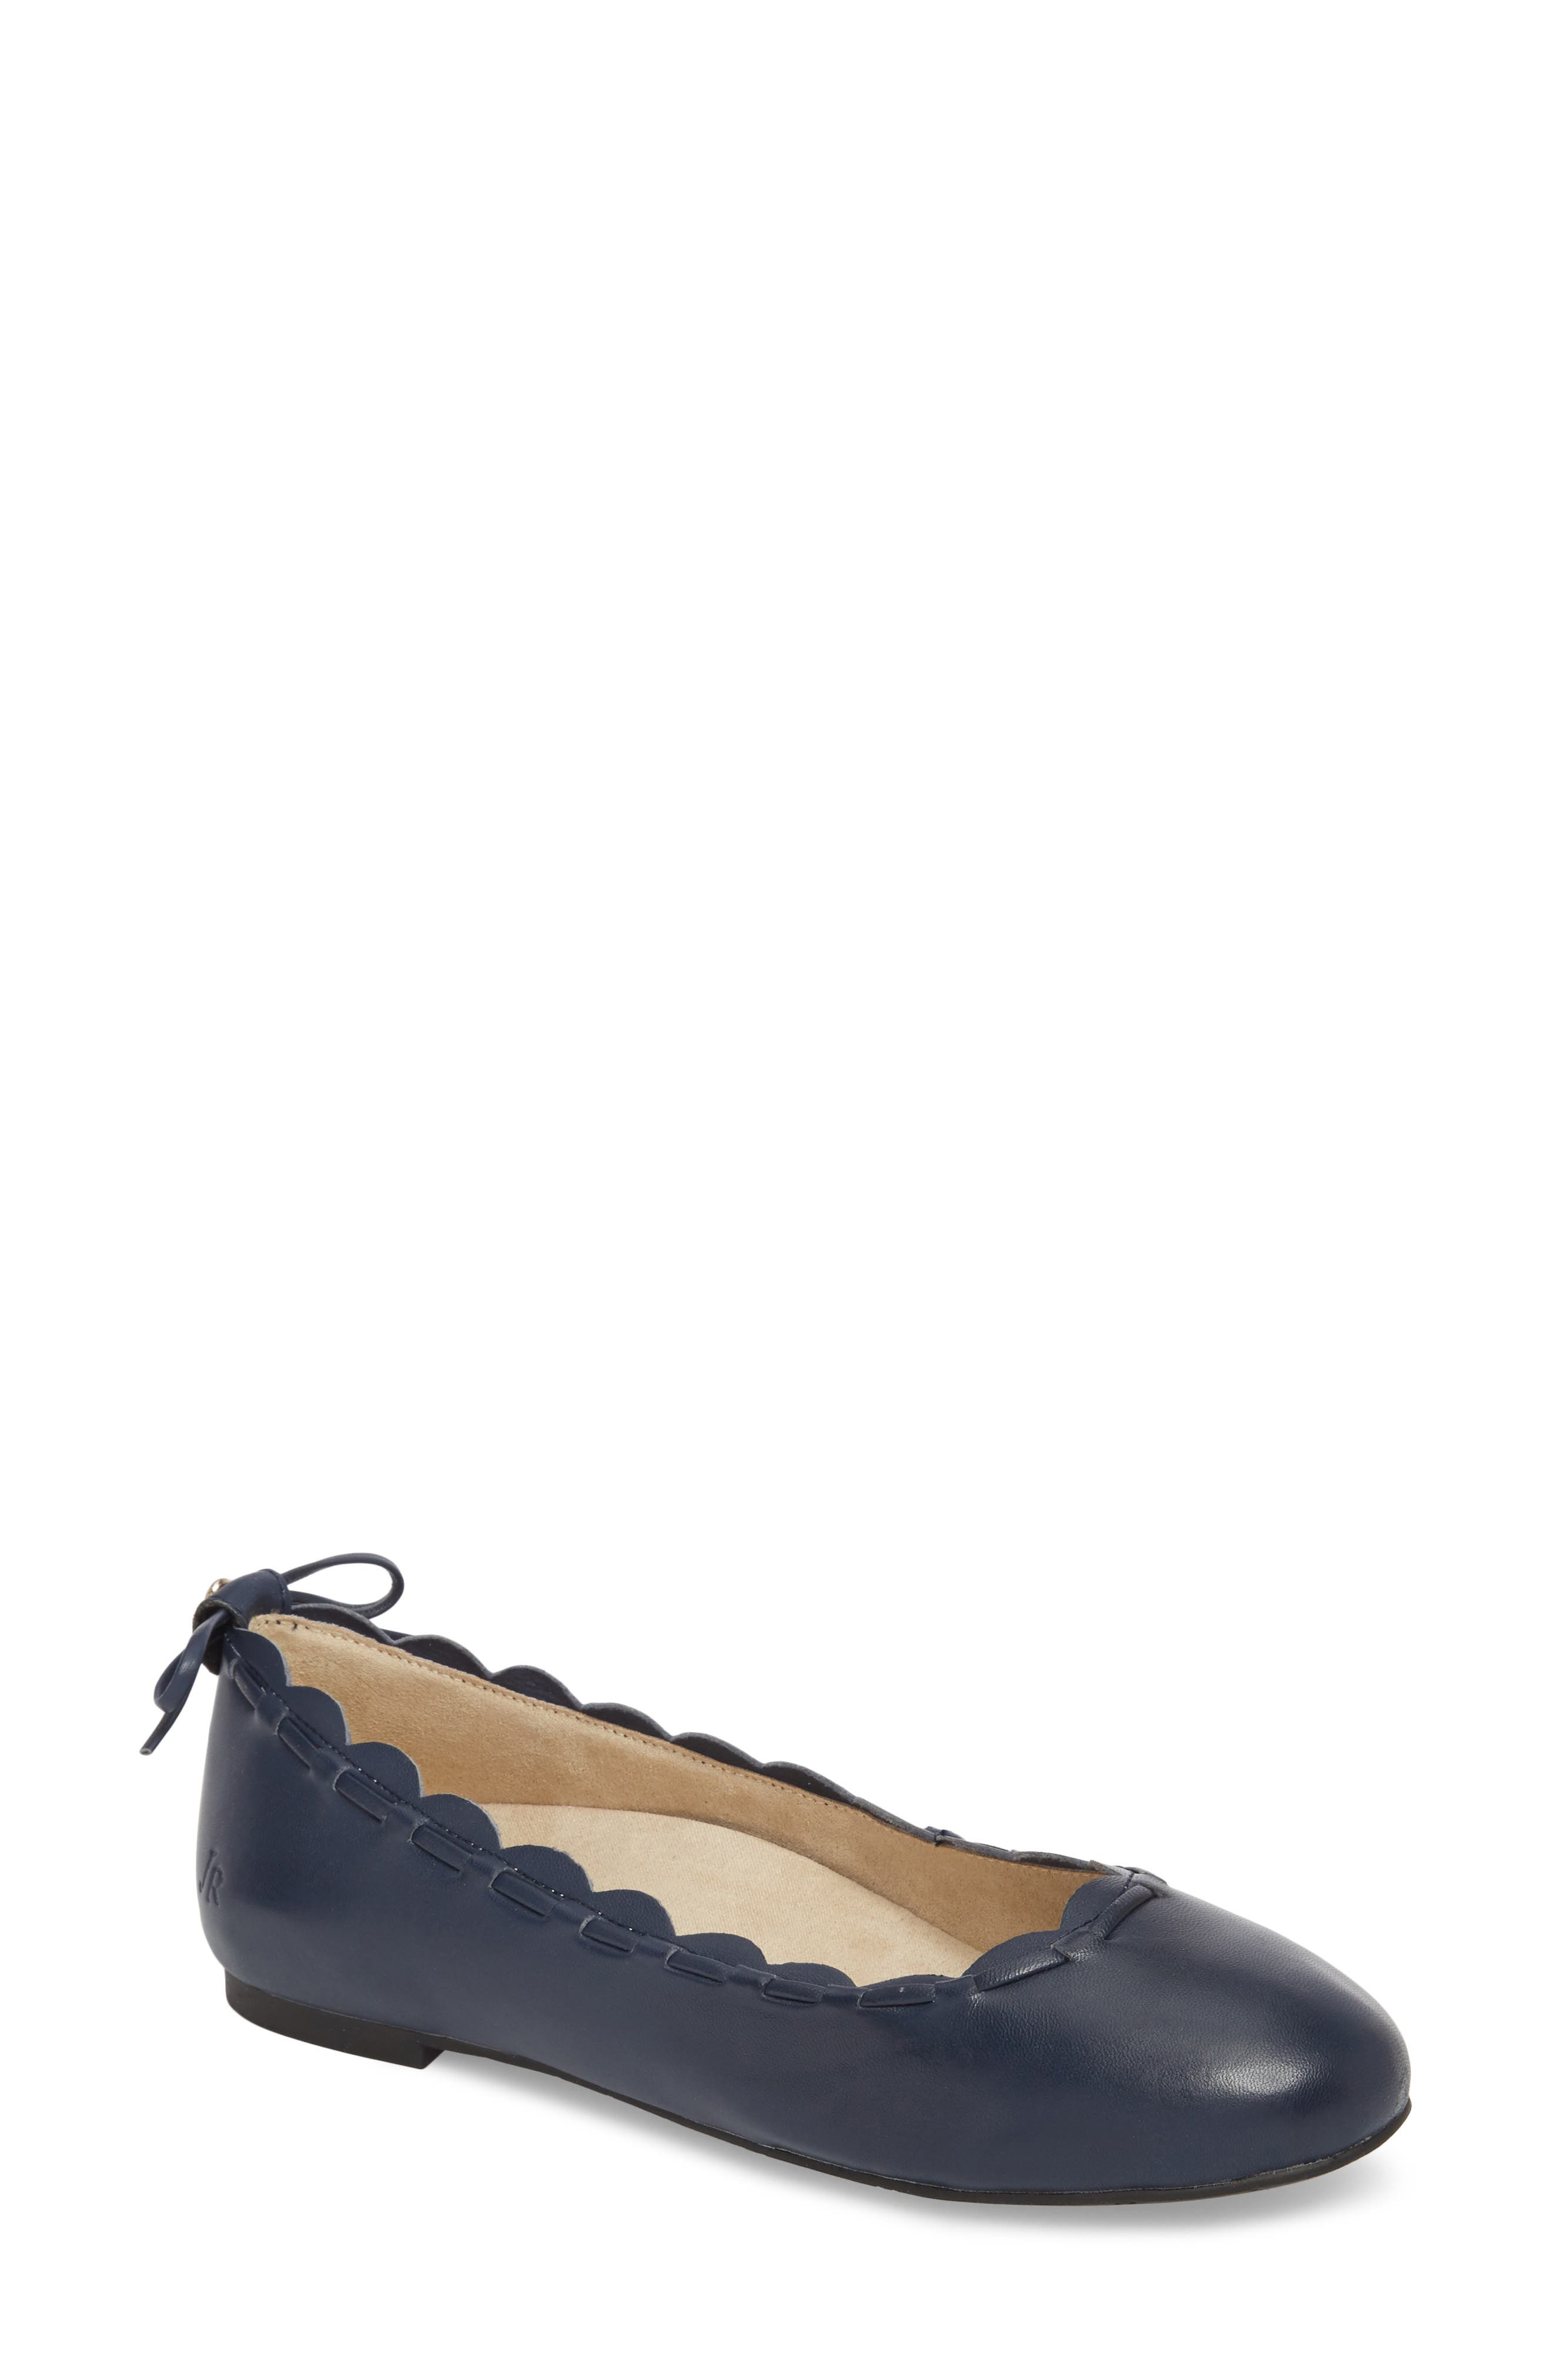 Lucie II Scalloped Flat,                         Main,                         color, Midnight Blue Leather